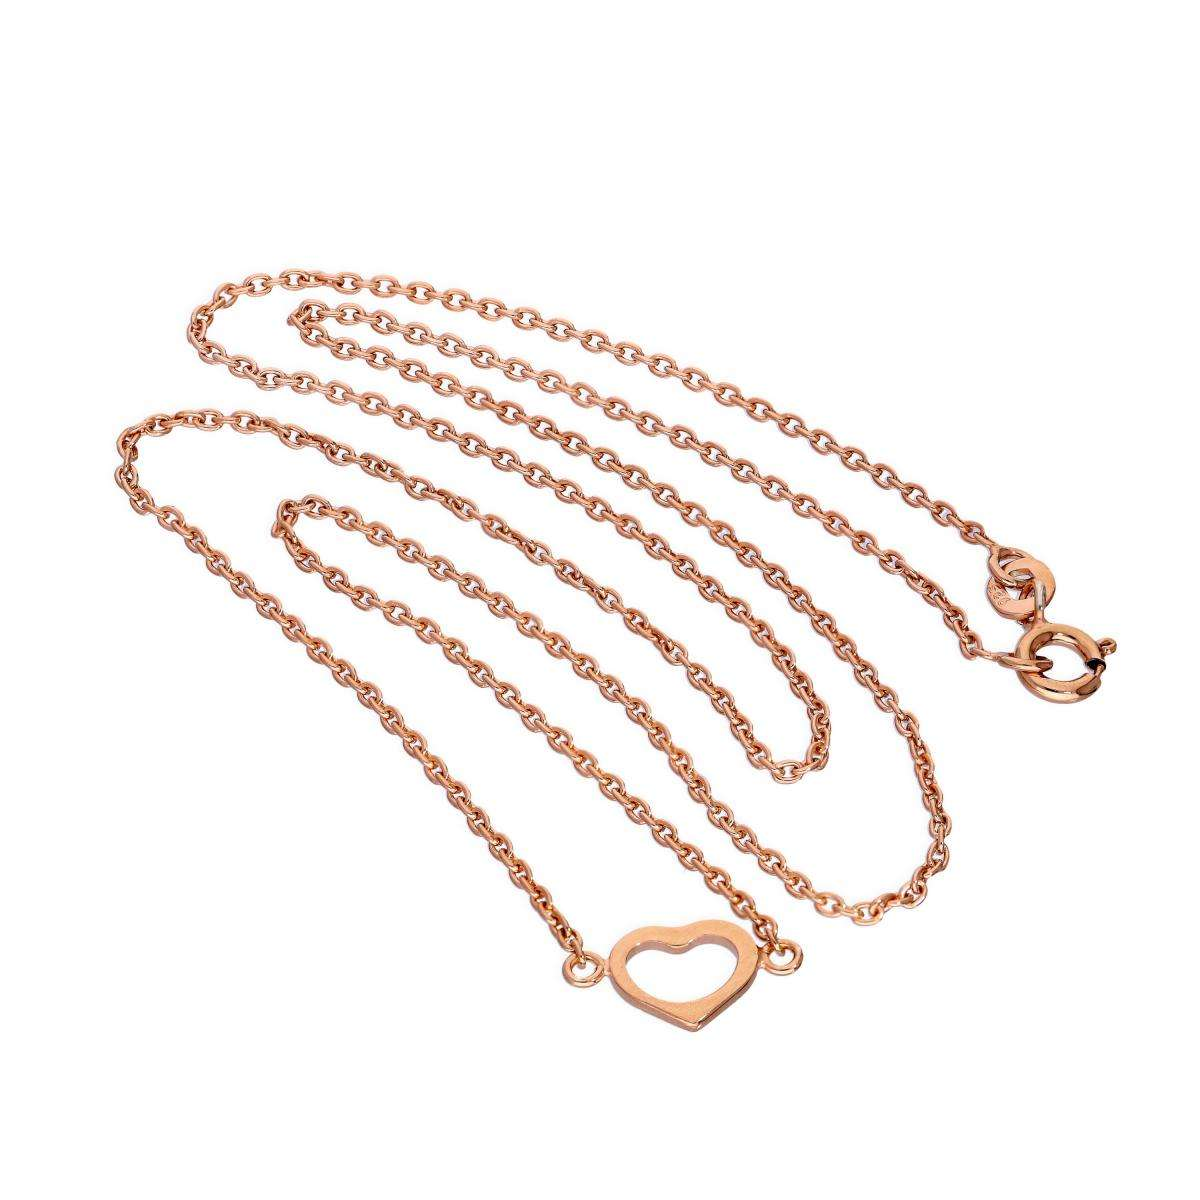 Alterative image for Rose Gold Plated Sterling Silver Heart Pendant on 18 Inch Chain